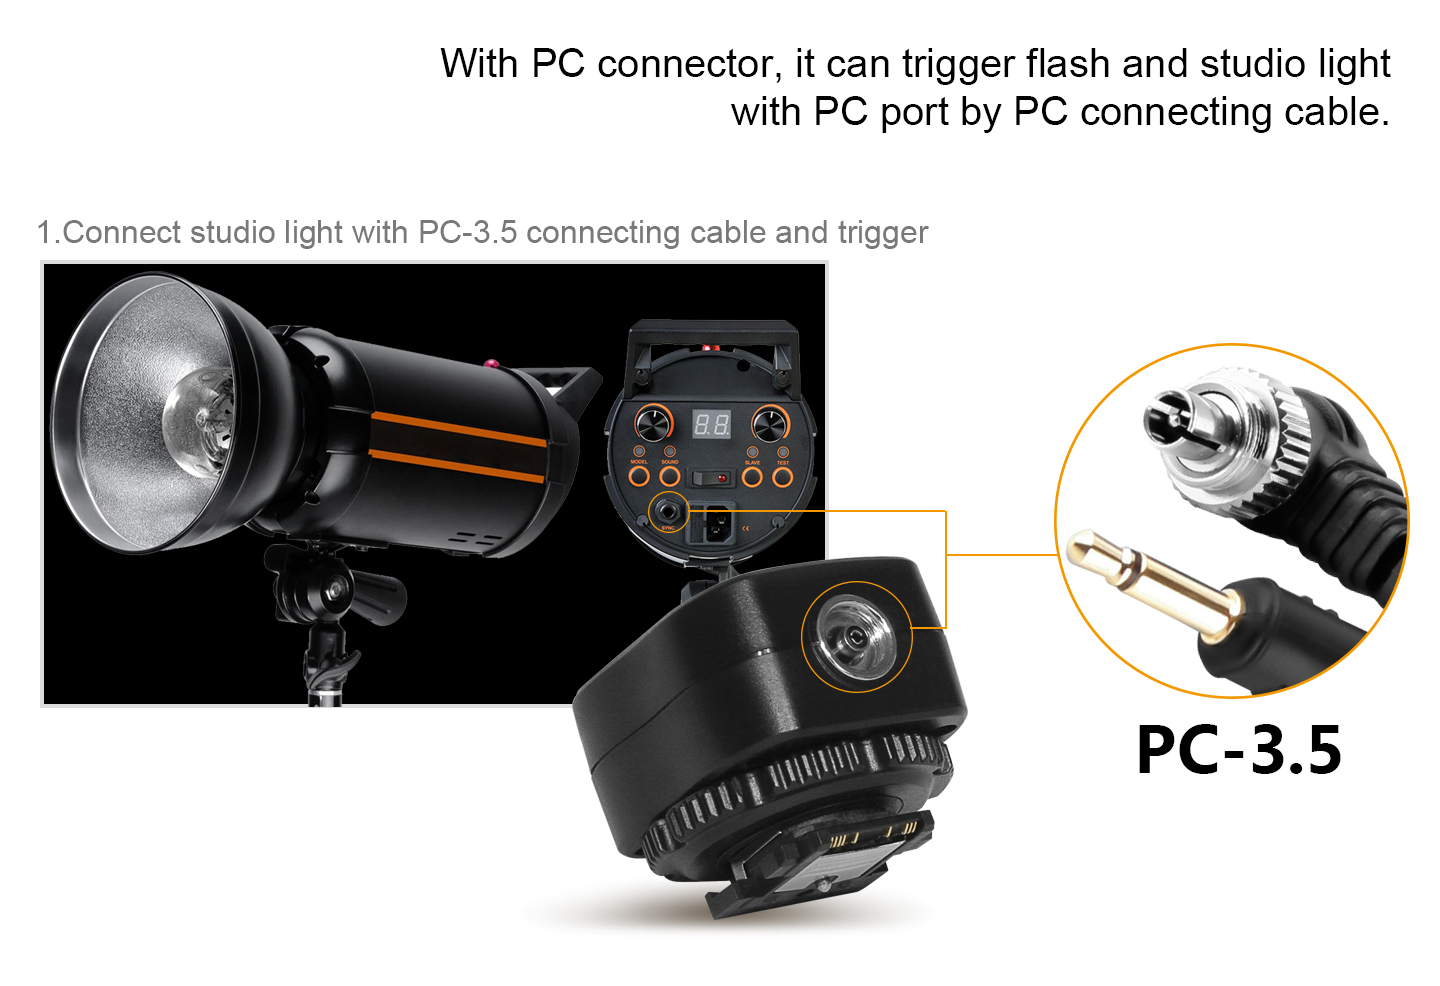 With PC connector, it can trigger flash and studio light with PC port by PC connecting cable